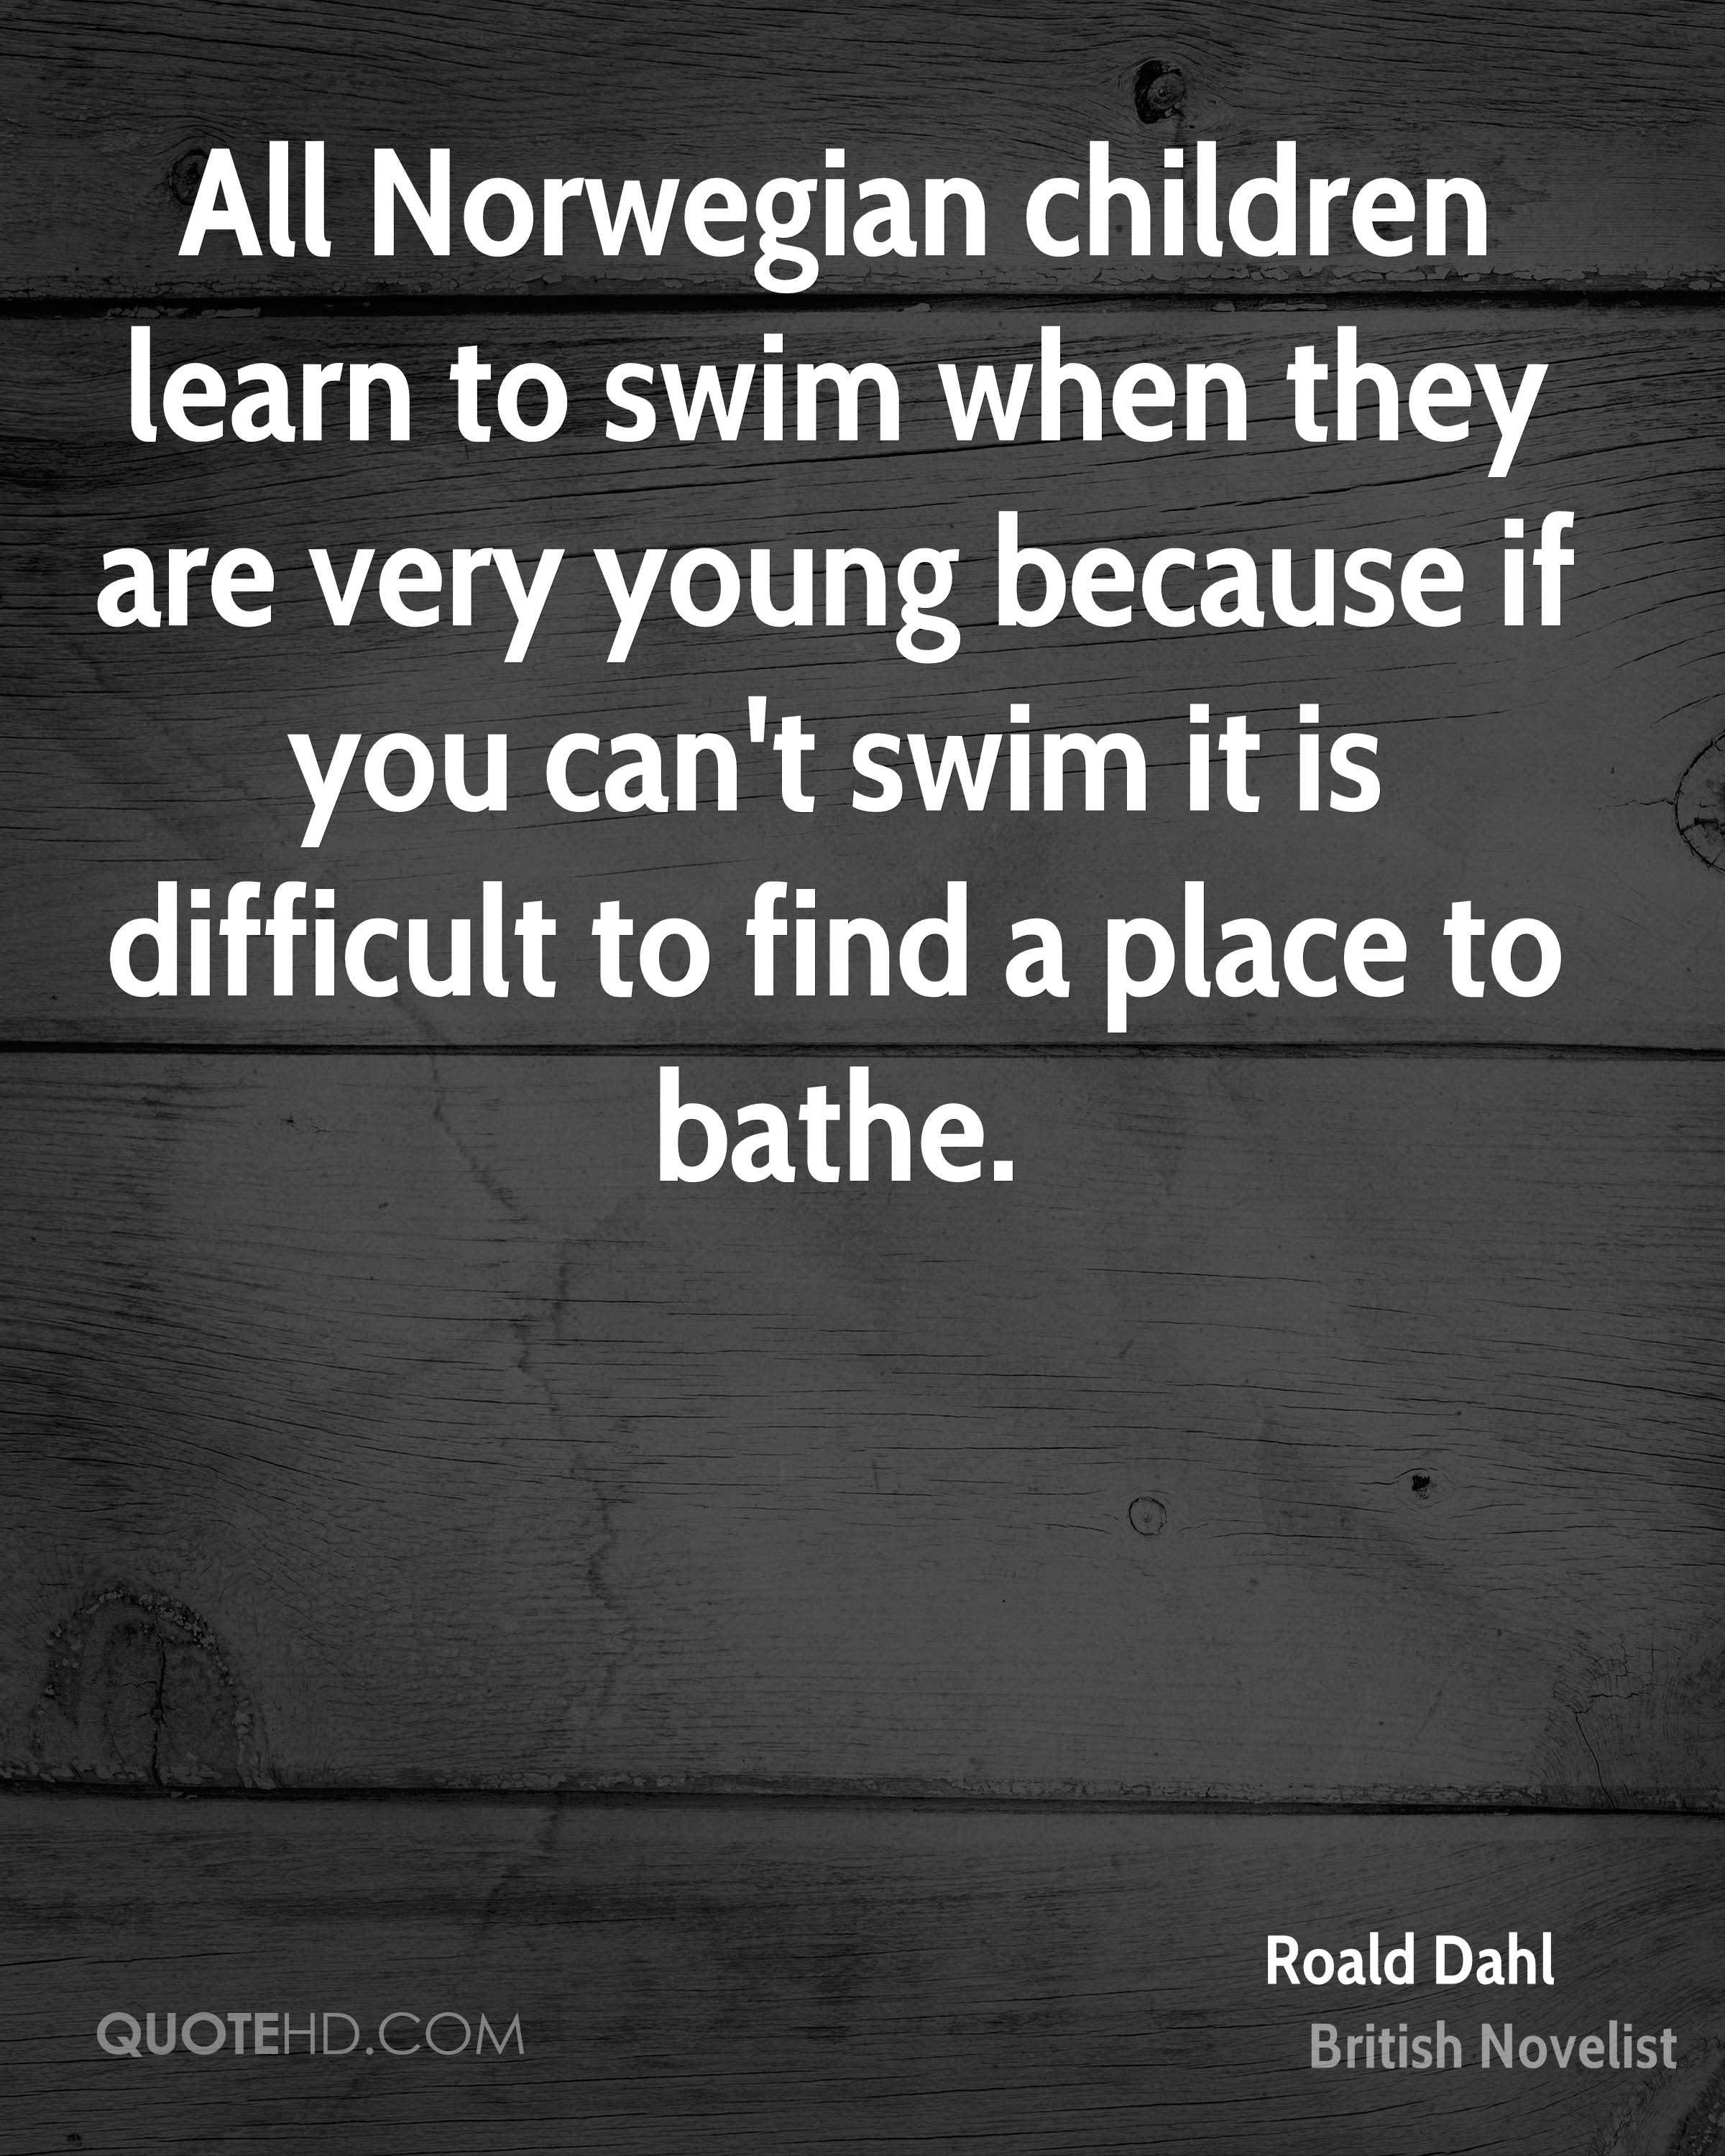 All Norwegian children learn to swim when they are very young because if you can't swim it is difficult to find a place to bathe.